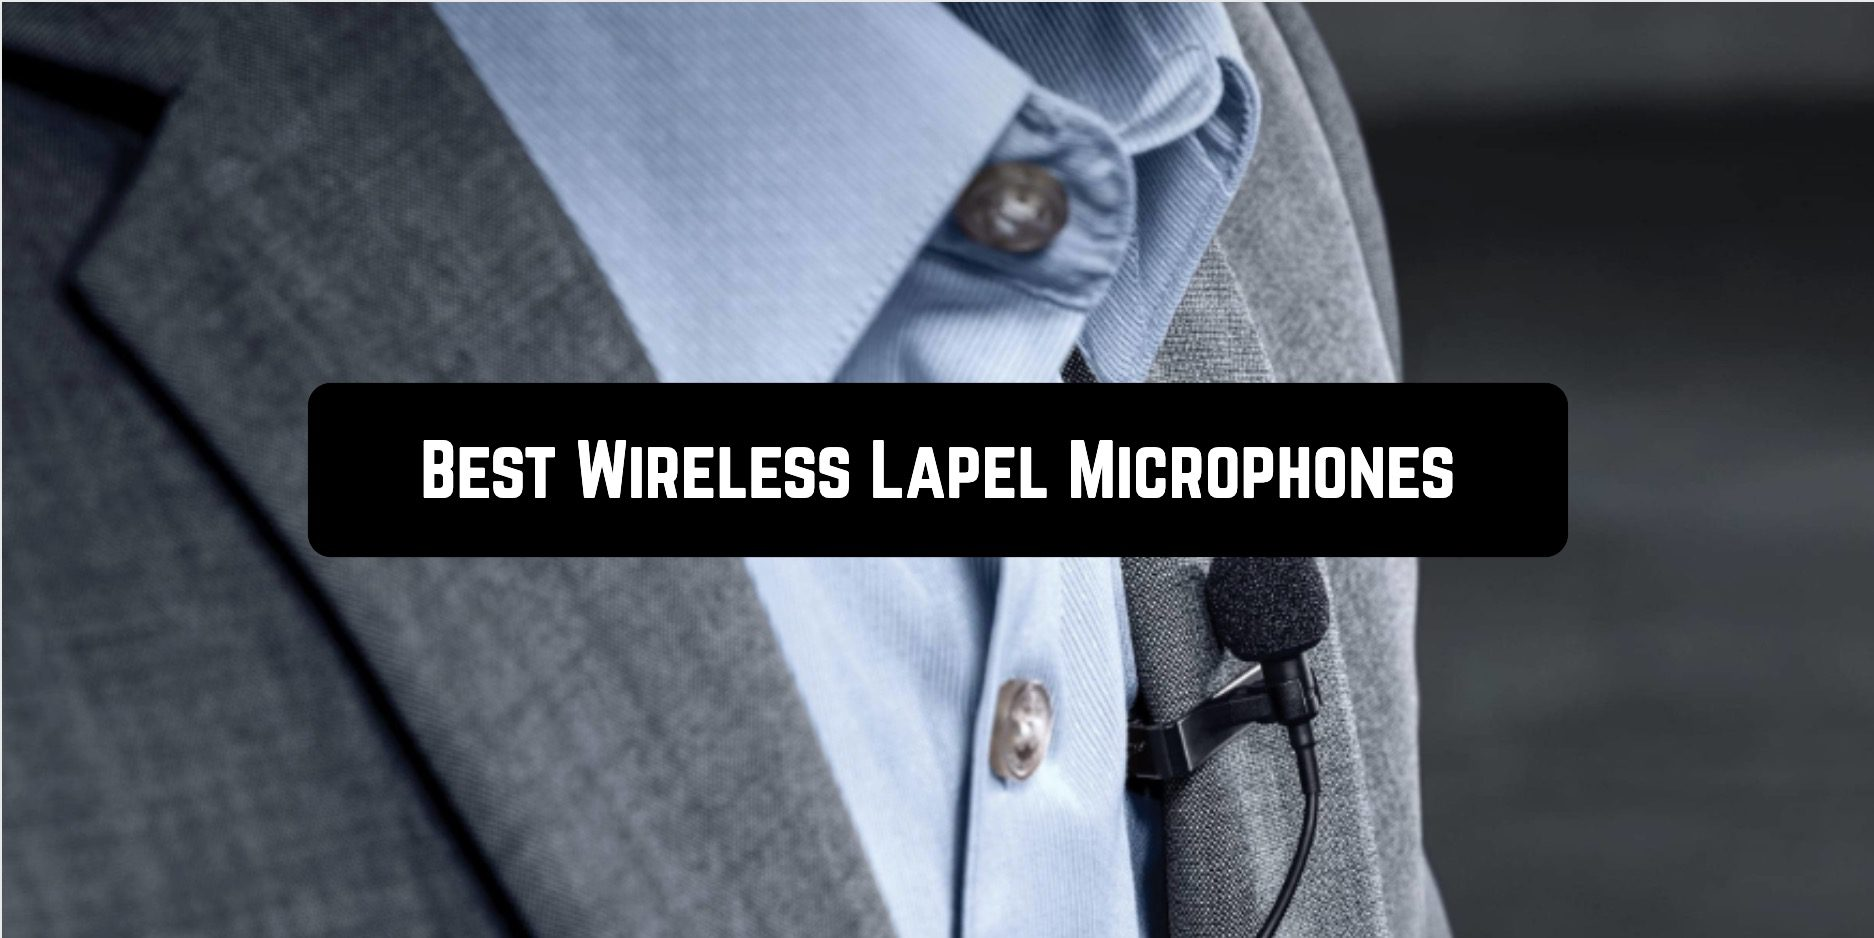 Best wireless lapel microphones